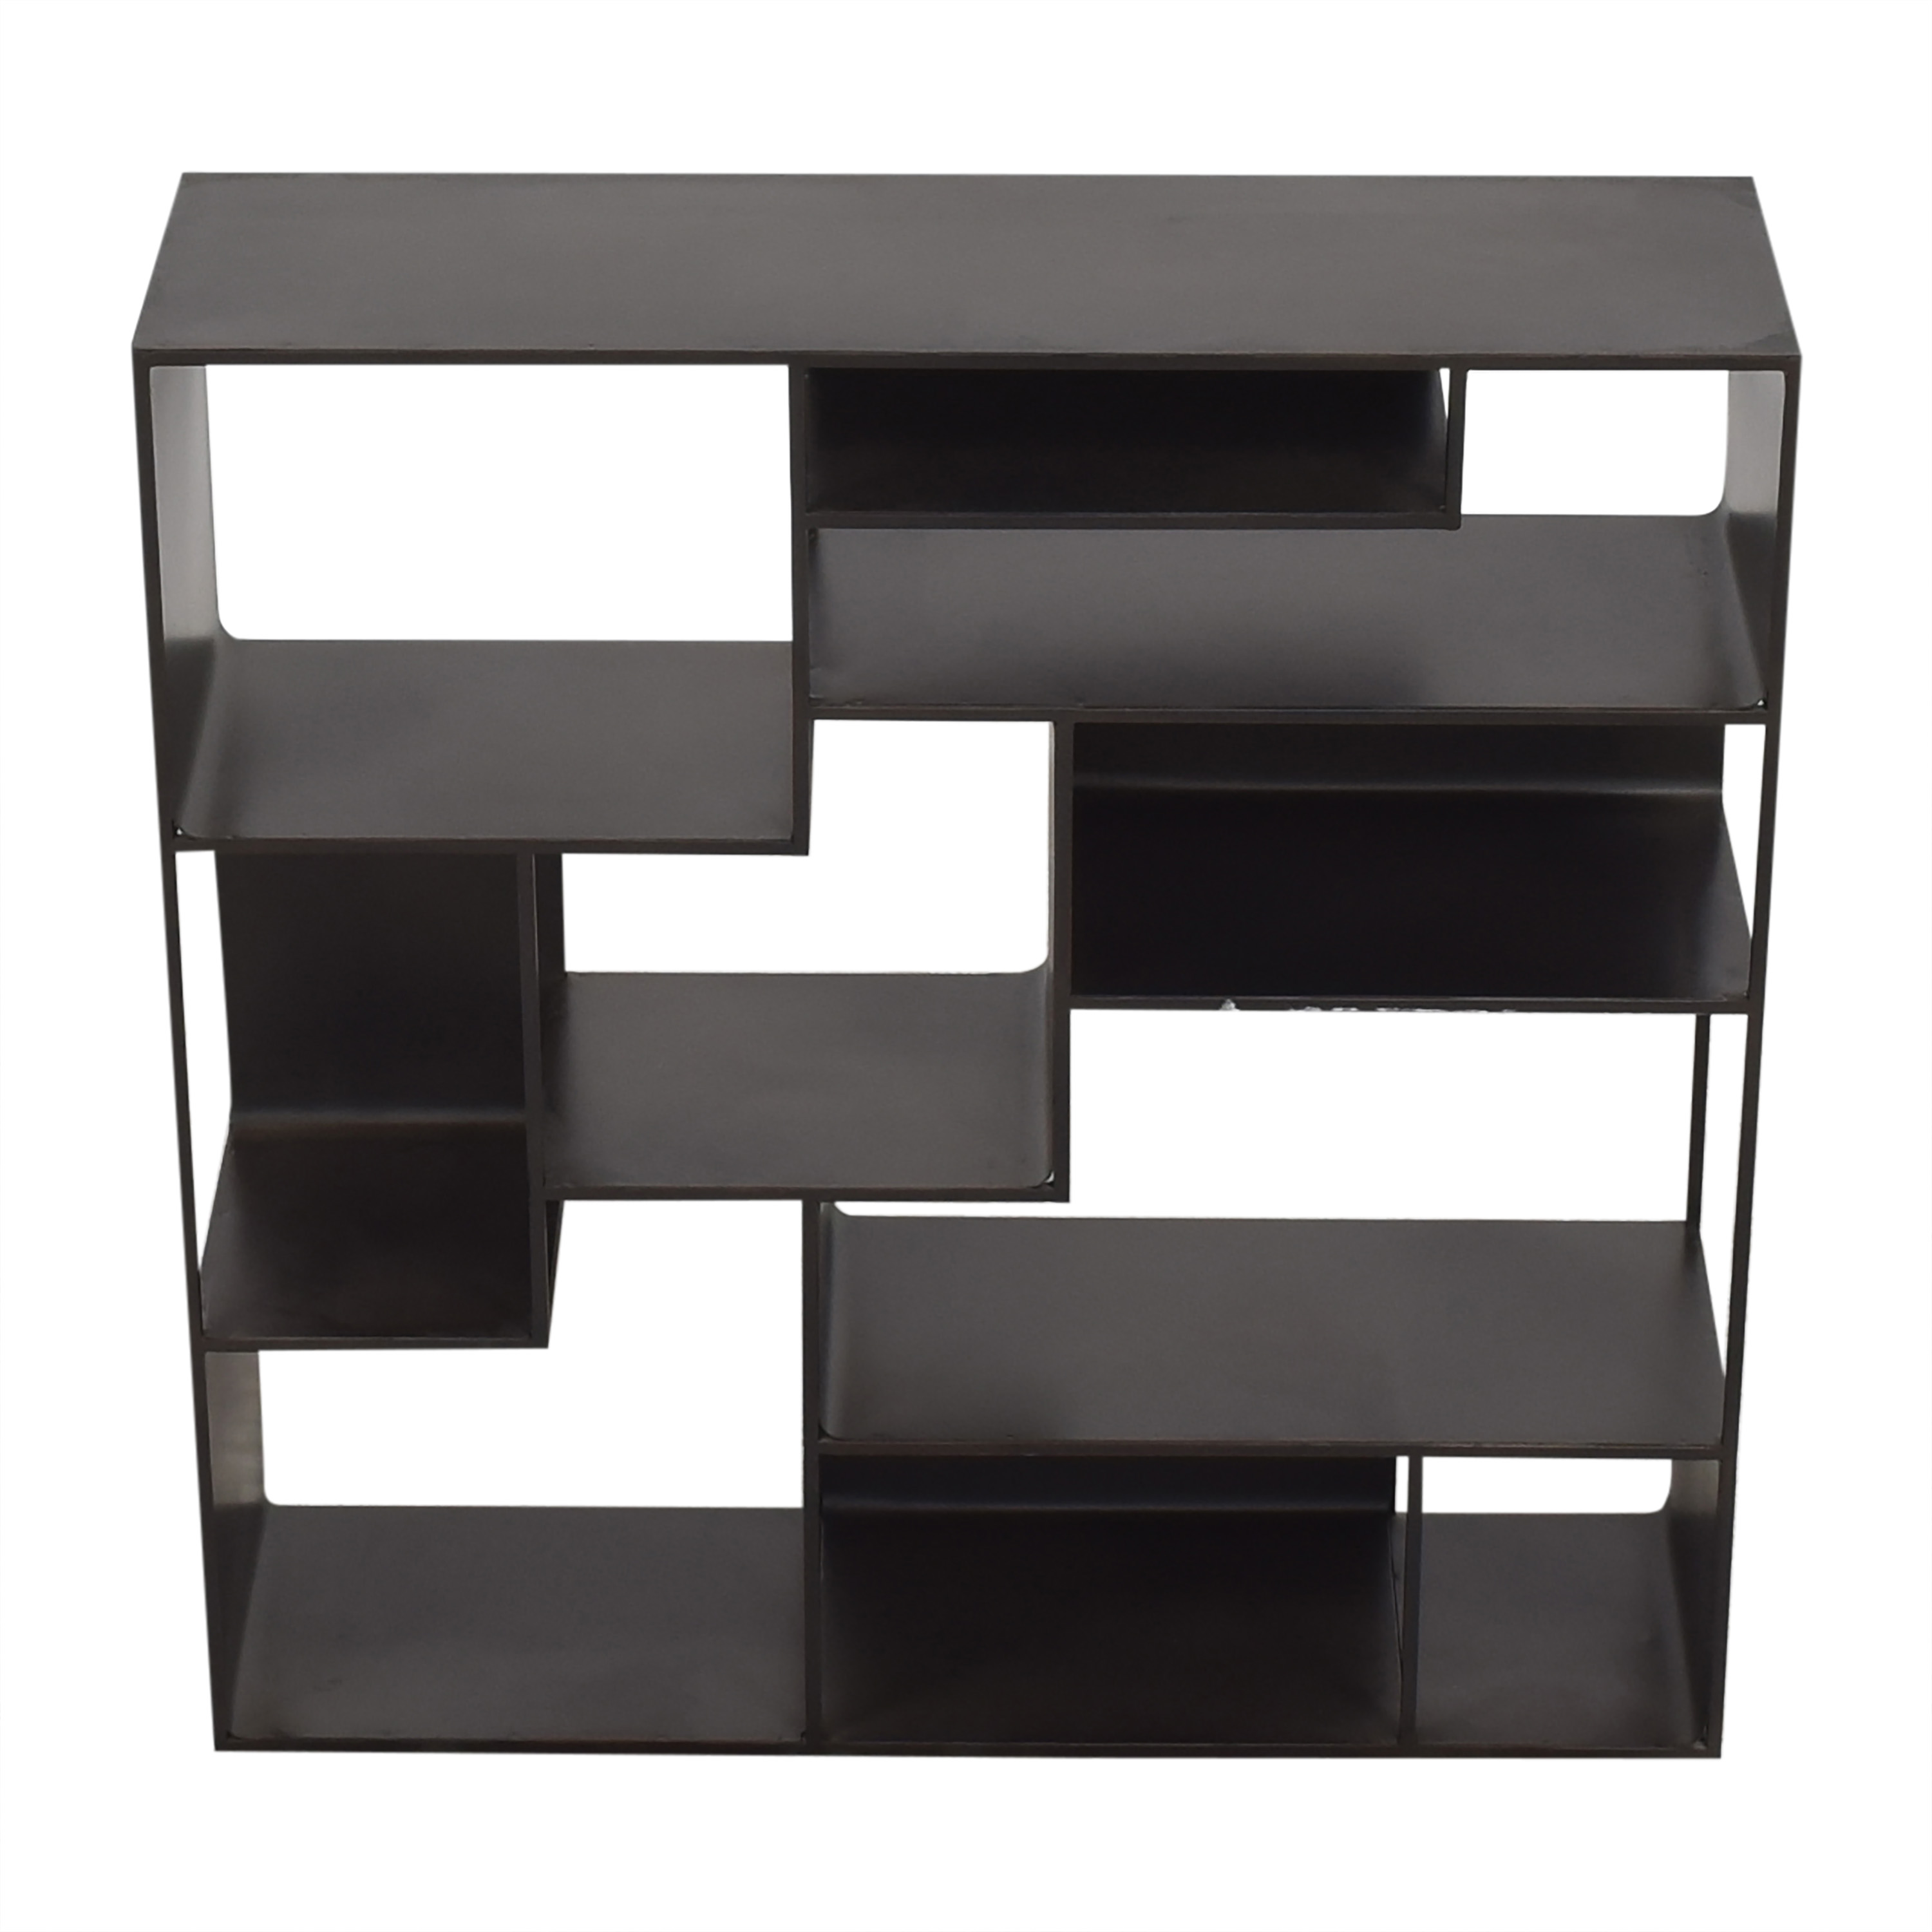 CB2 CB2 Wall Library on sale